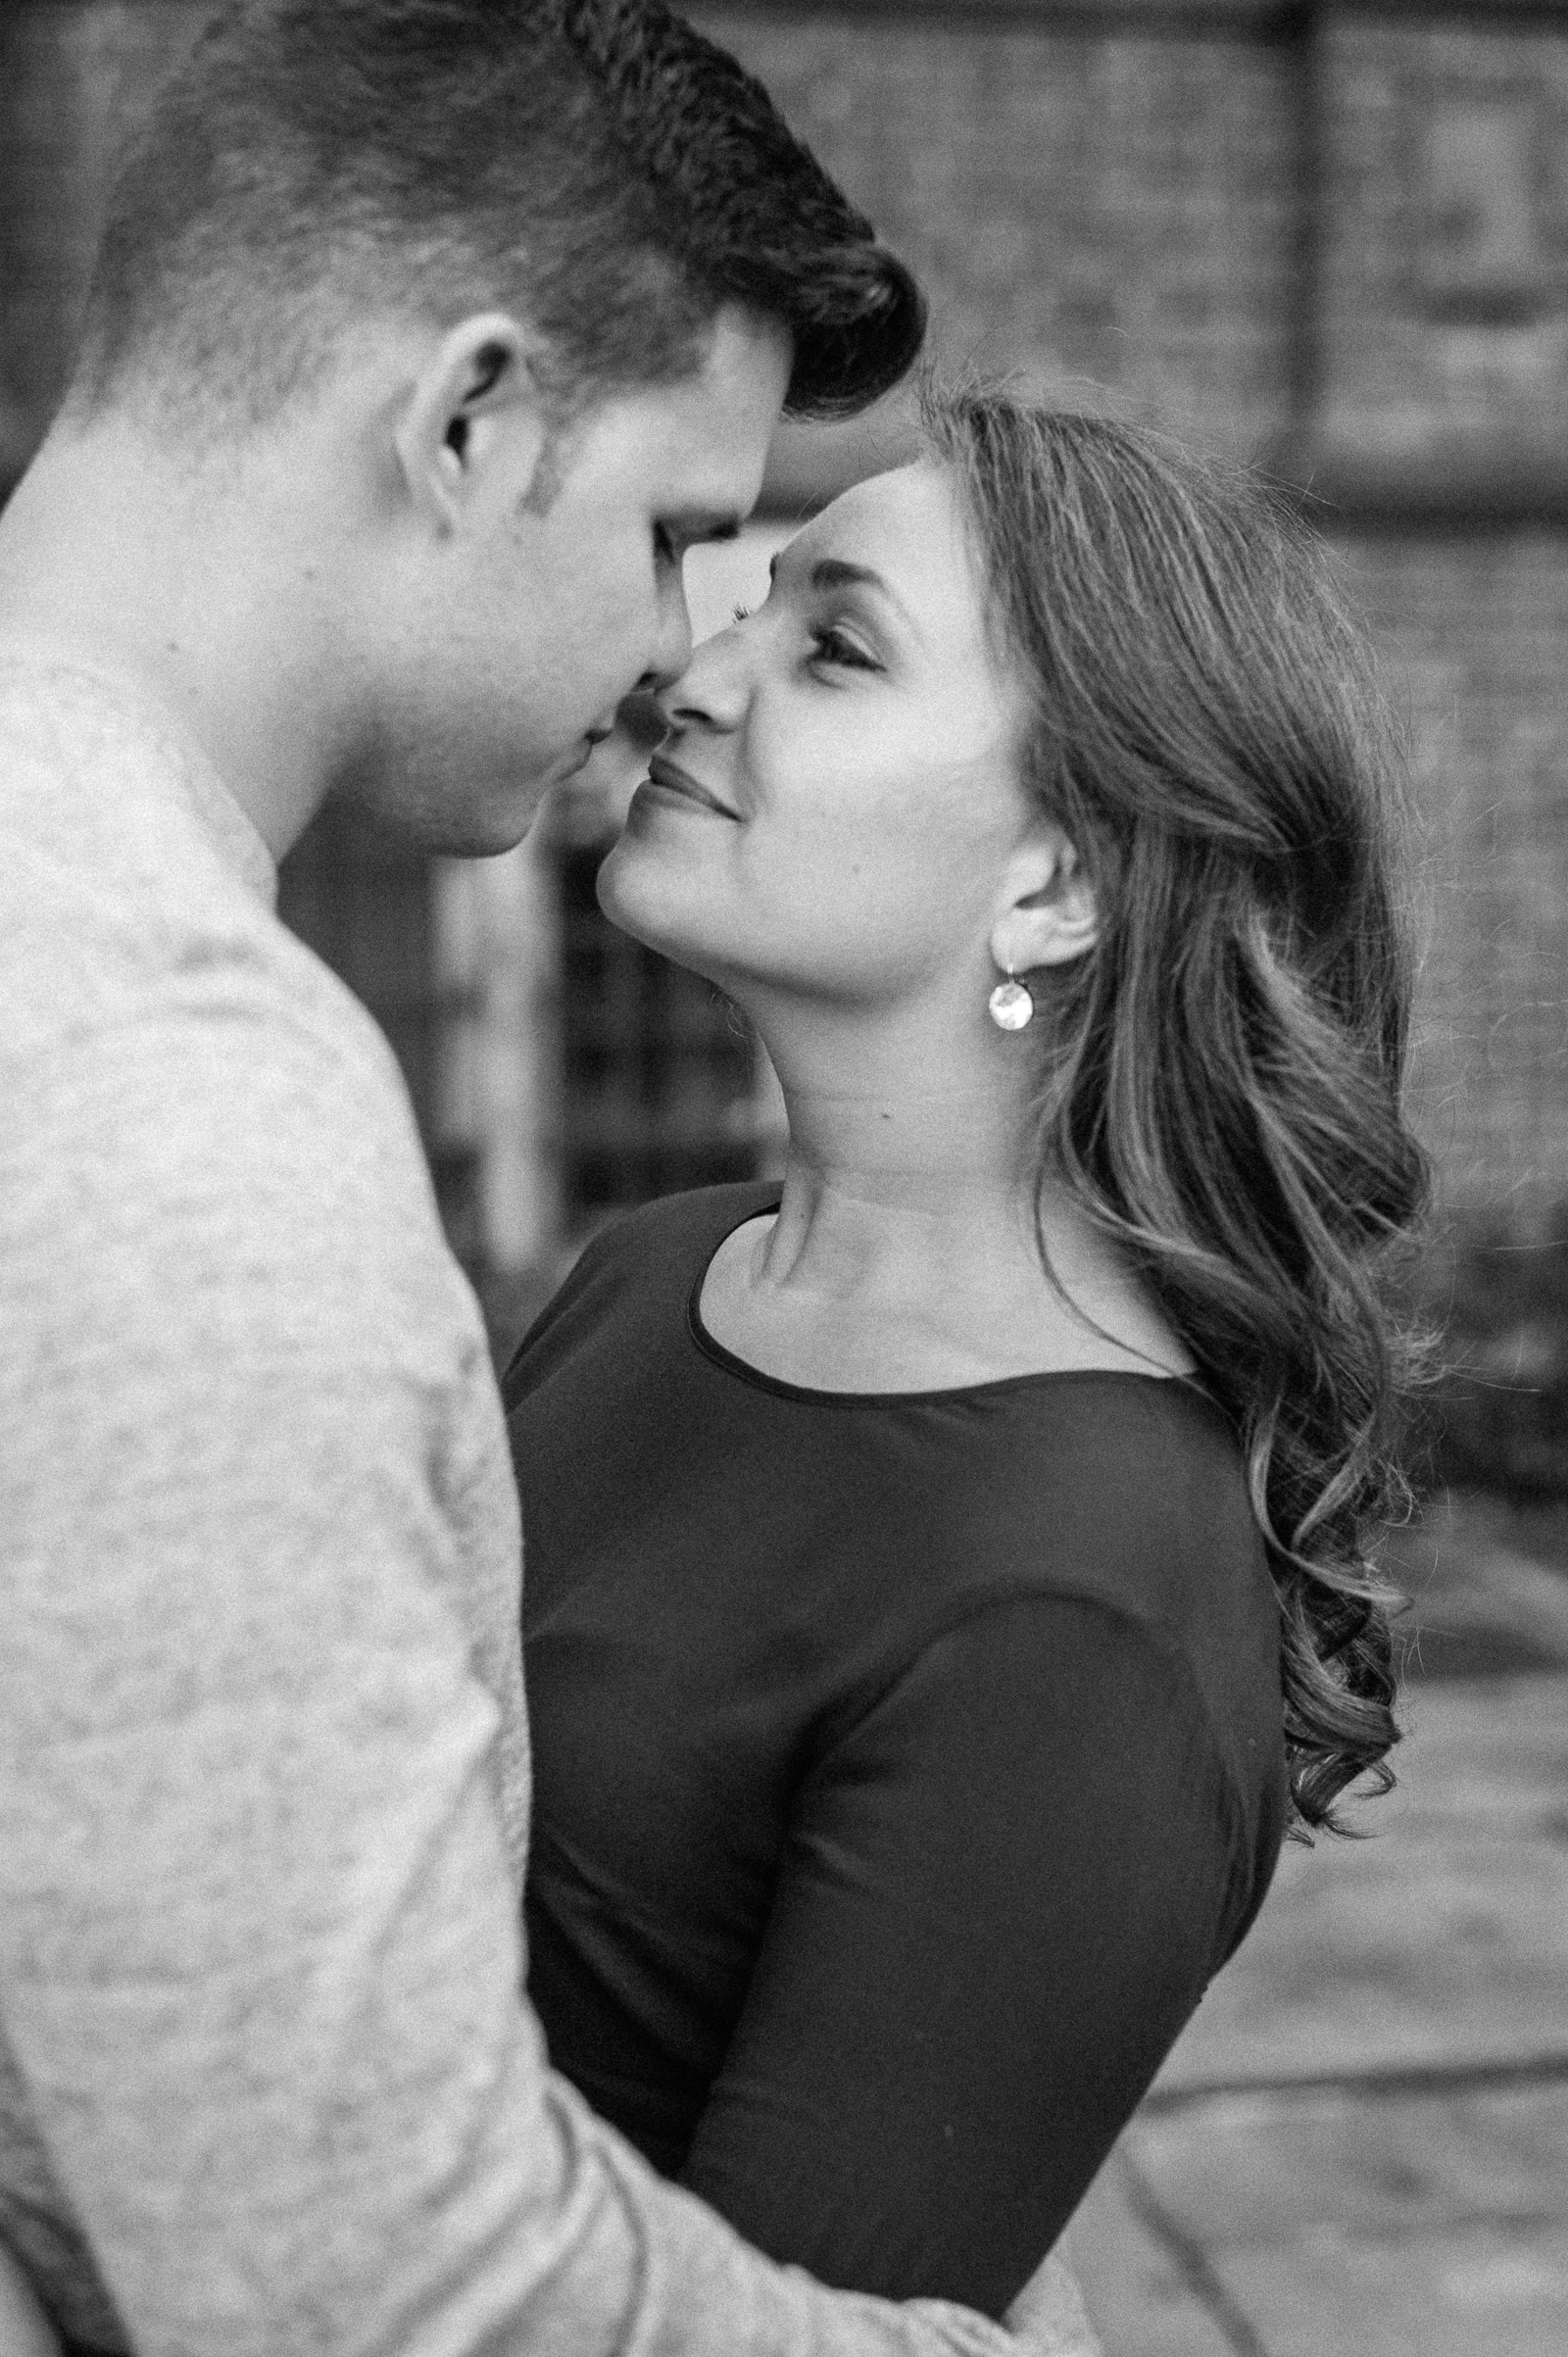 Bianca-and-Joey-Richmond-Engagement-Photos-Melissa-Desjardins-Photography-2